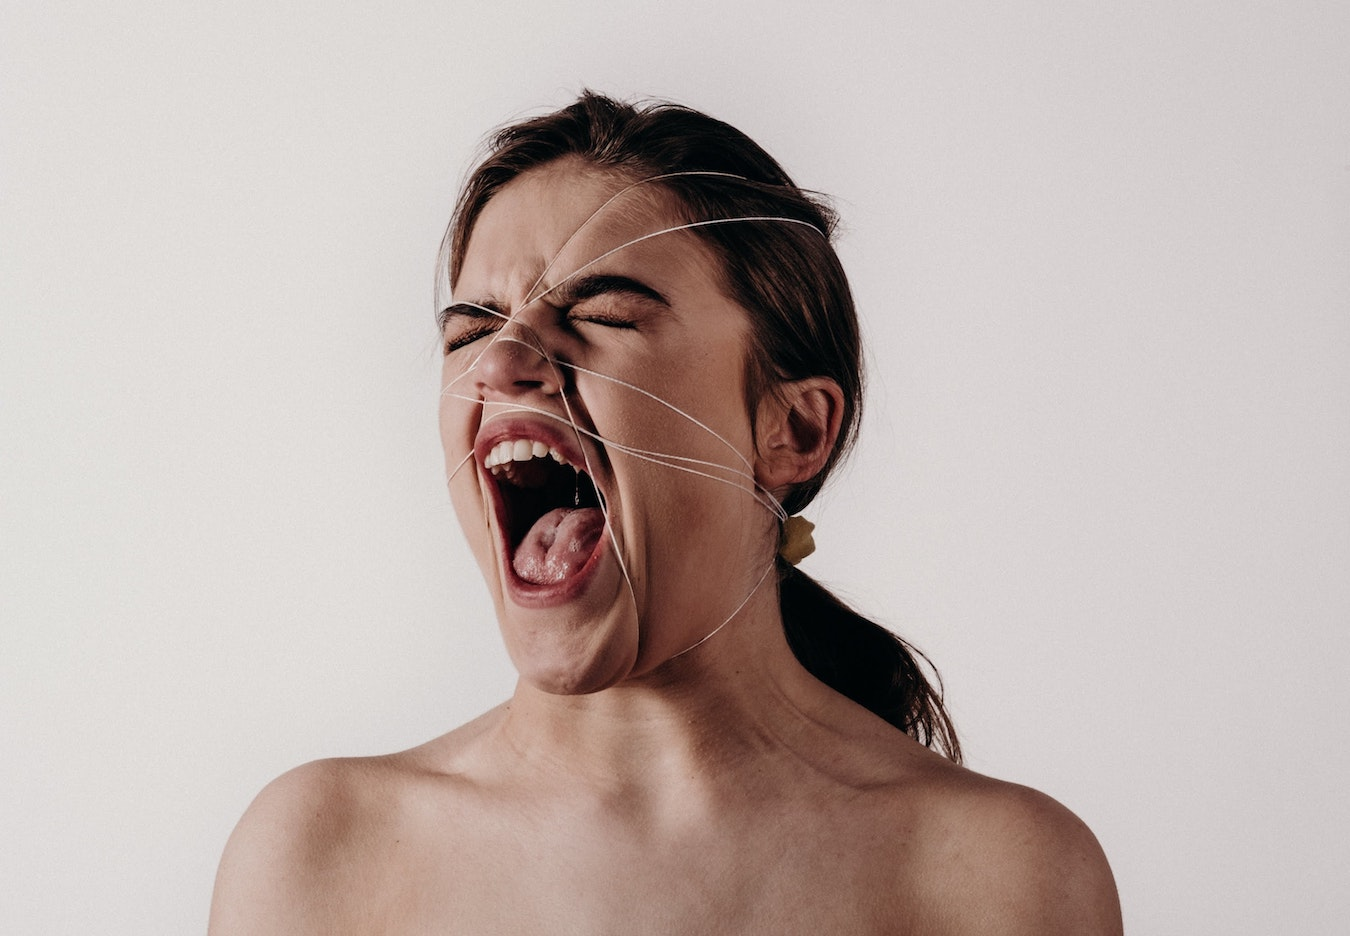 Woman screaming